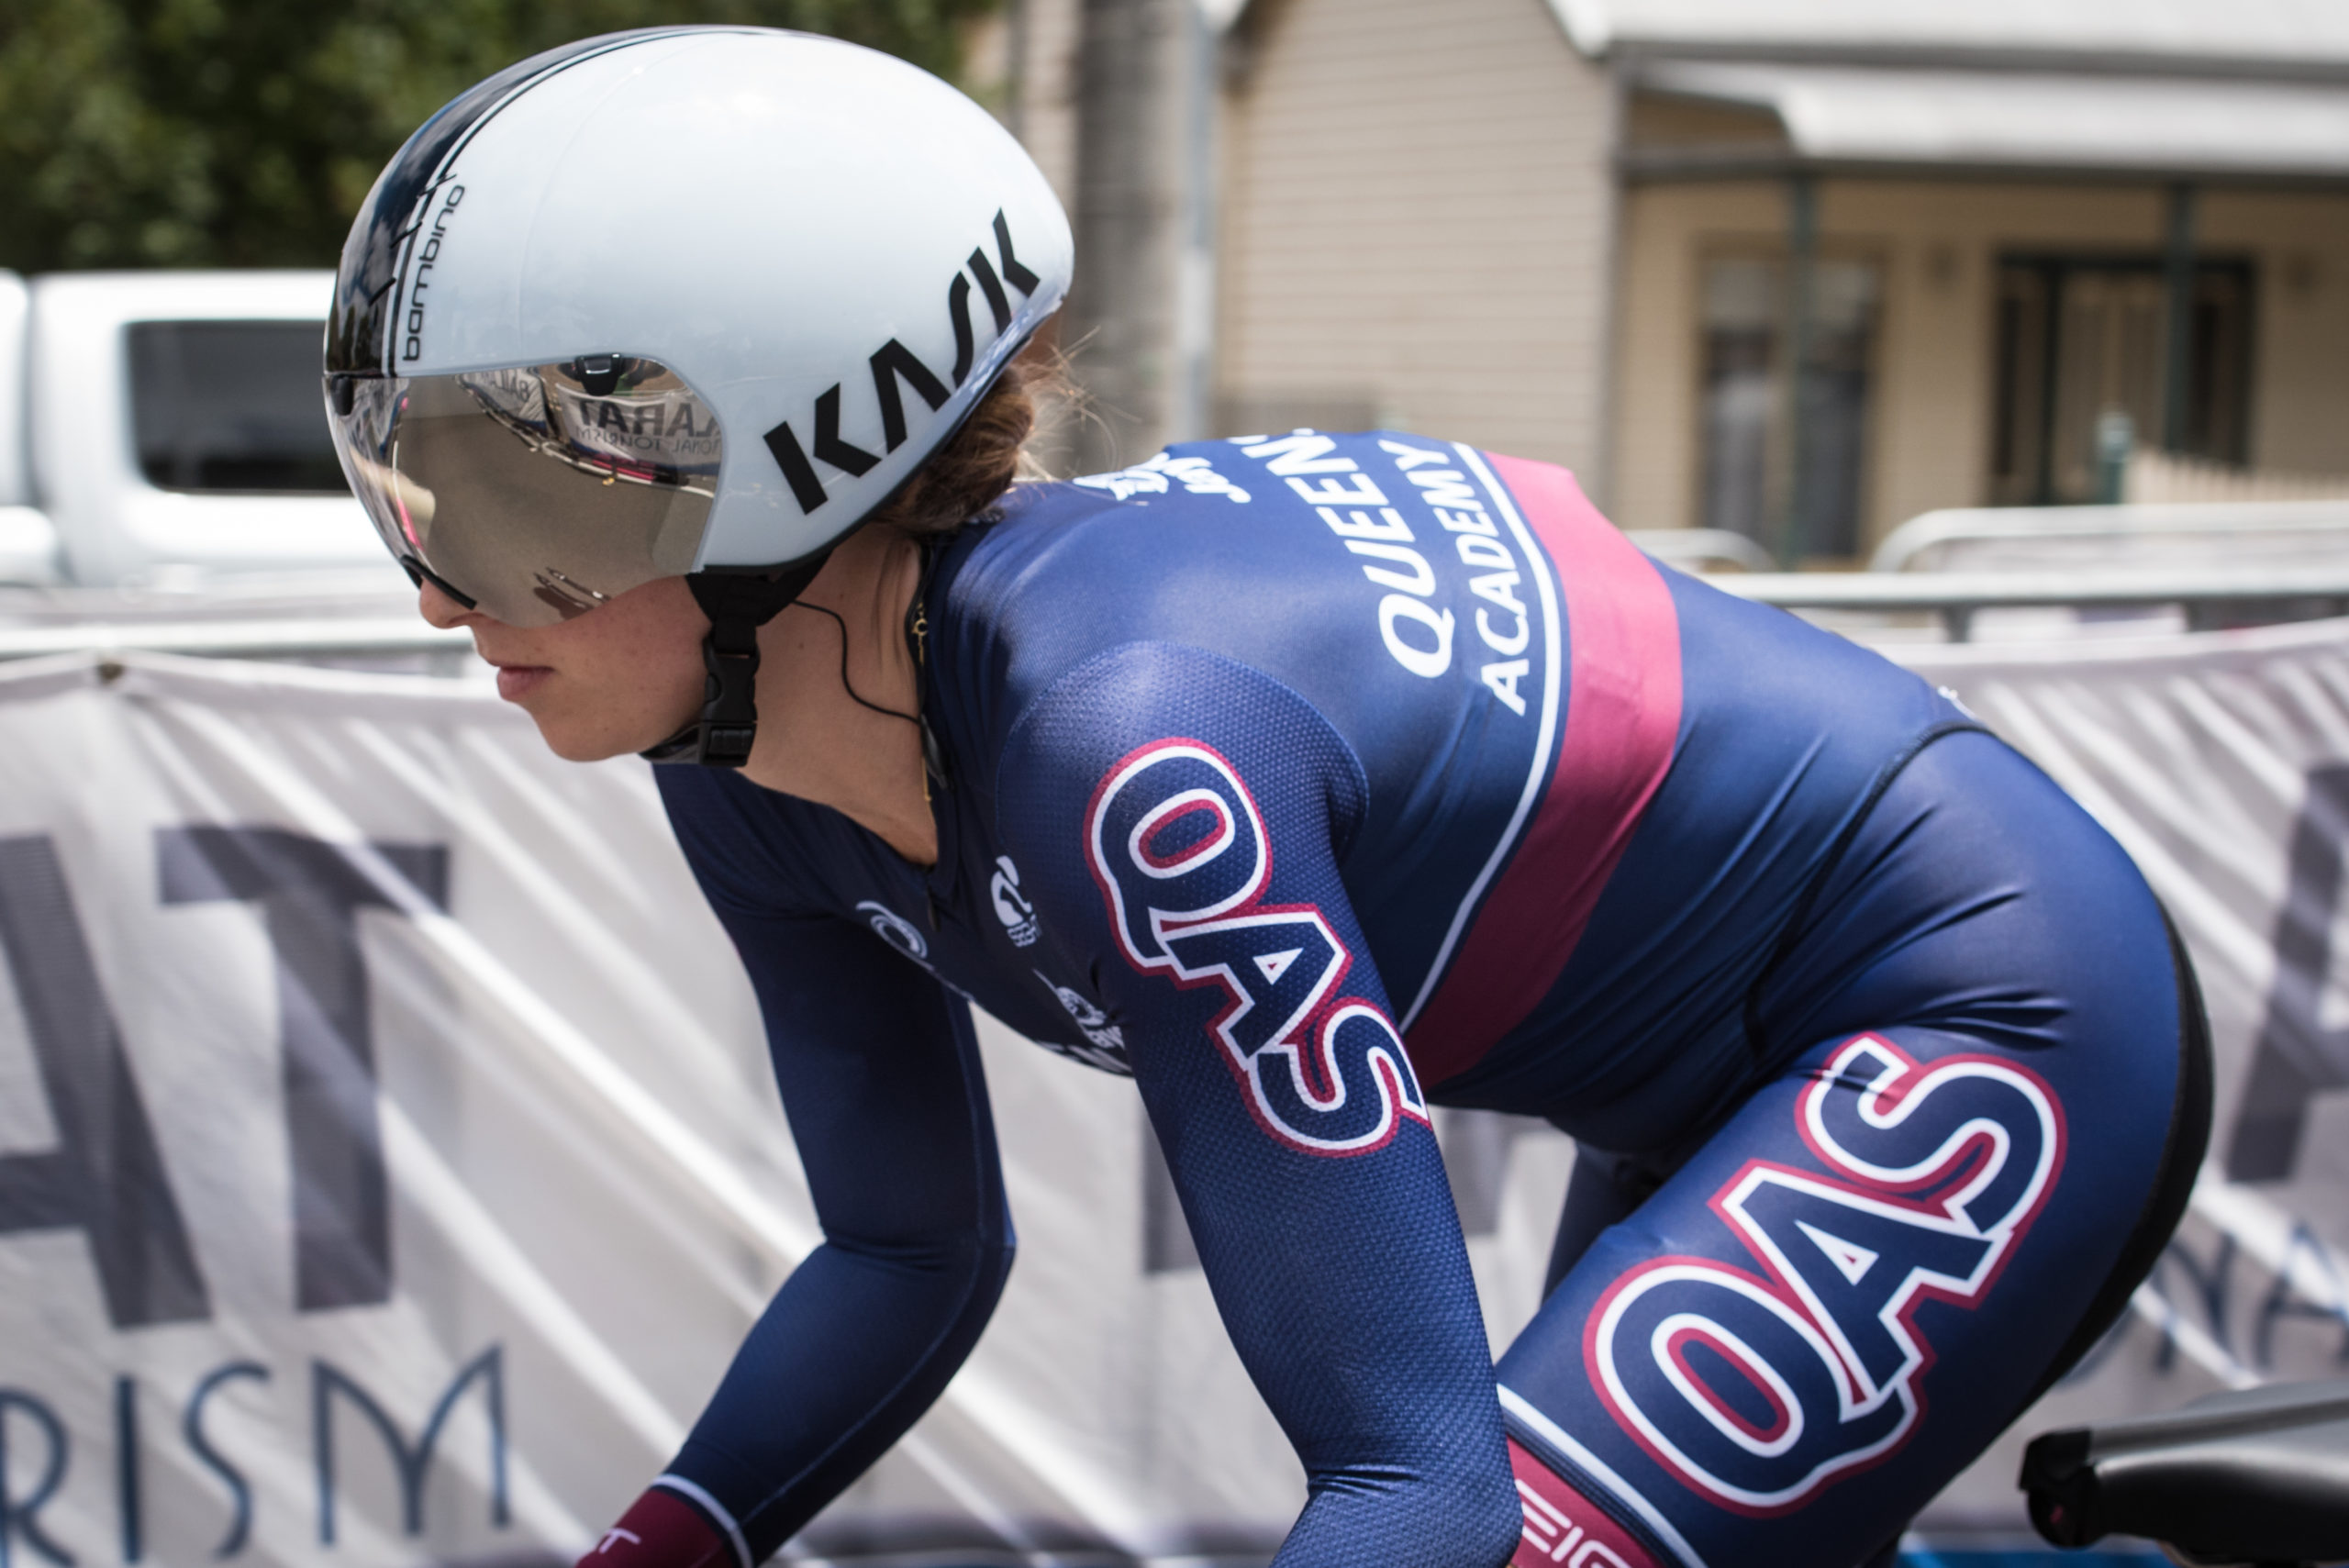 Skerritt rolling out at the Australian Road Nationals time trial, where she took tenth overall and second in the under 23 category